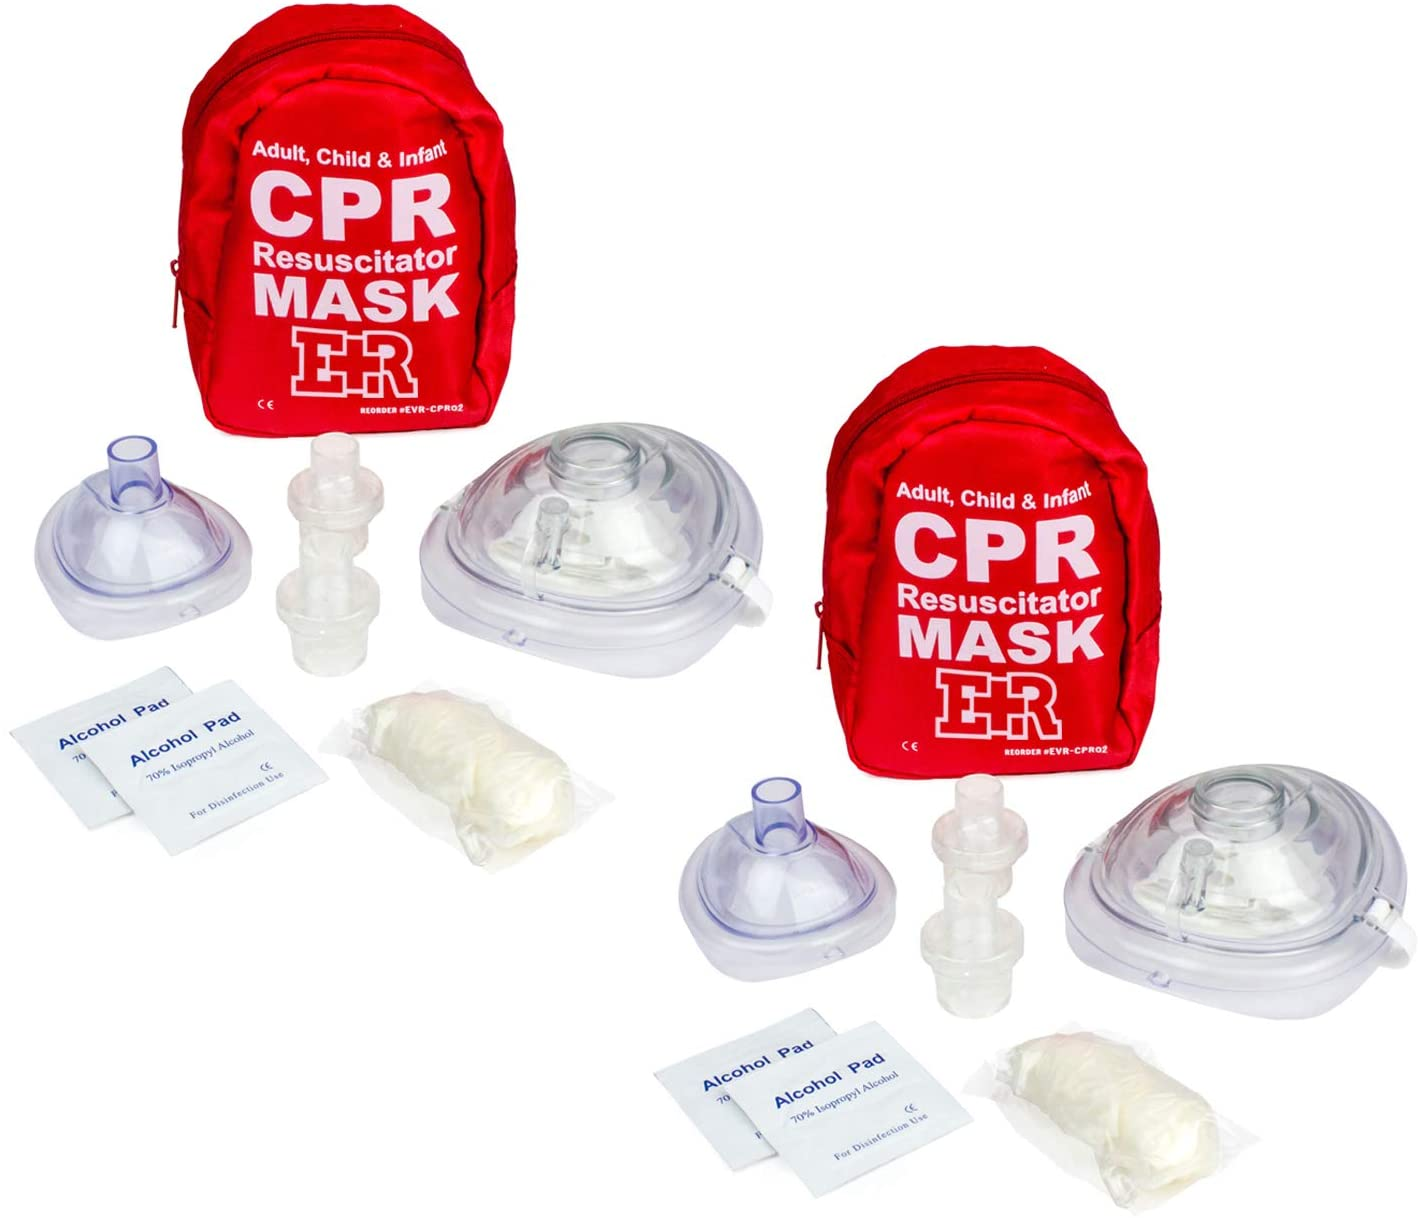 Ever Ready First Aid Adult and Infant CPR Mask Combo Kit with 2 Valves with Pair of Nitrile Gloves & 2 Alcohol Prep Pads - Red - 2 Pack